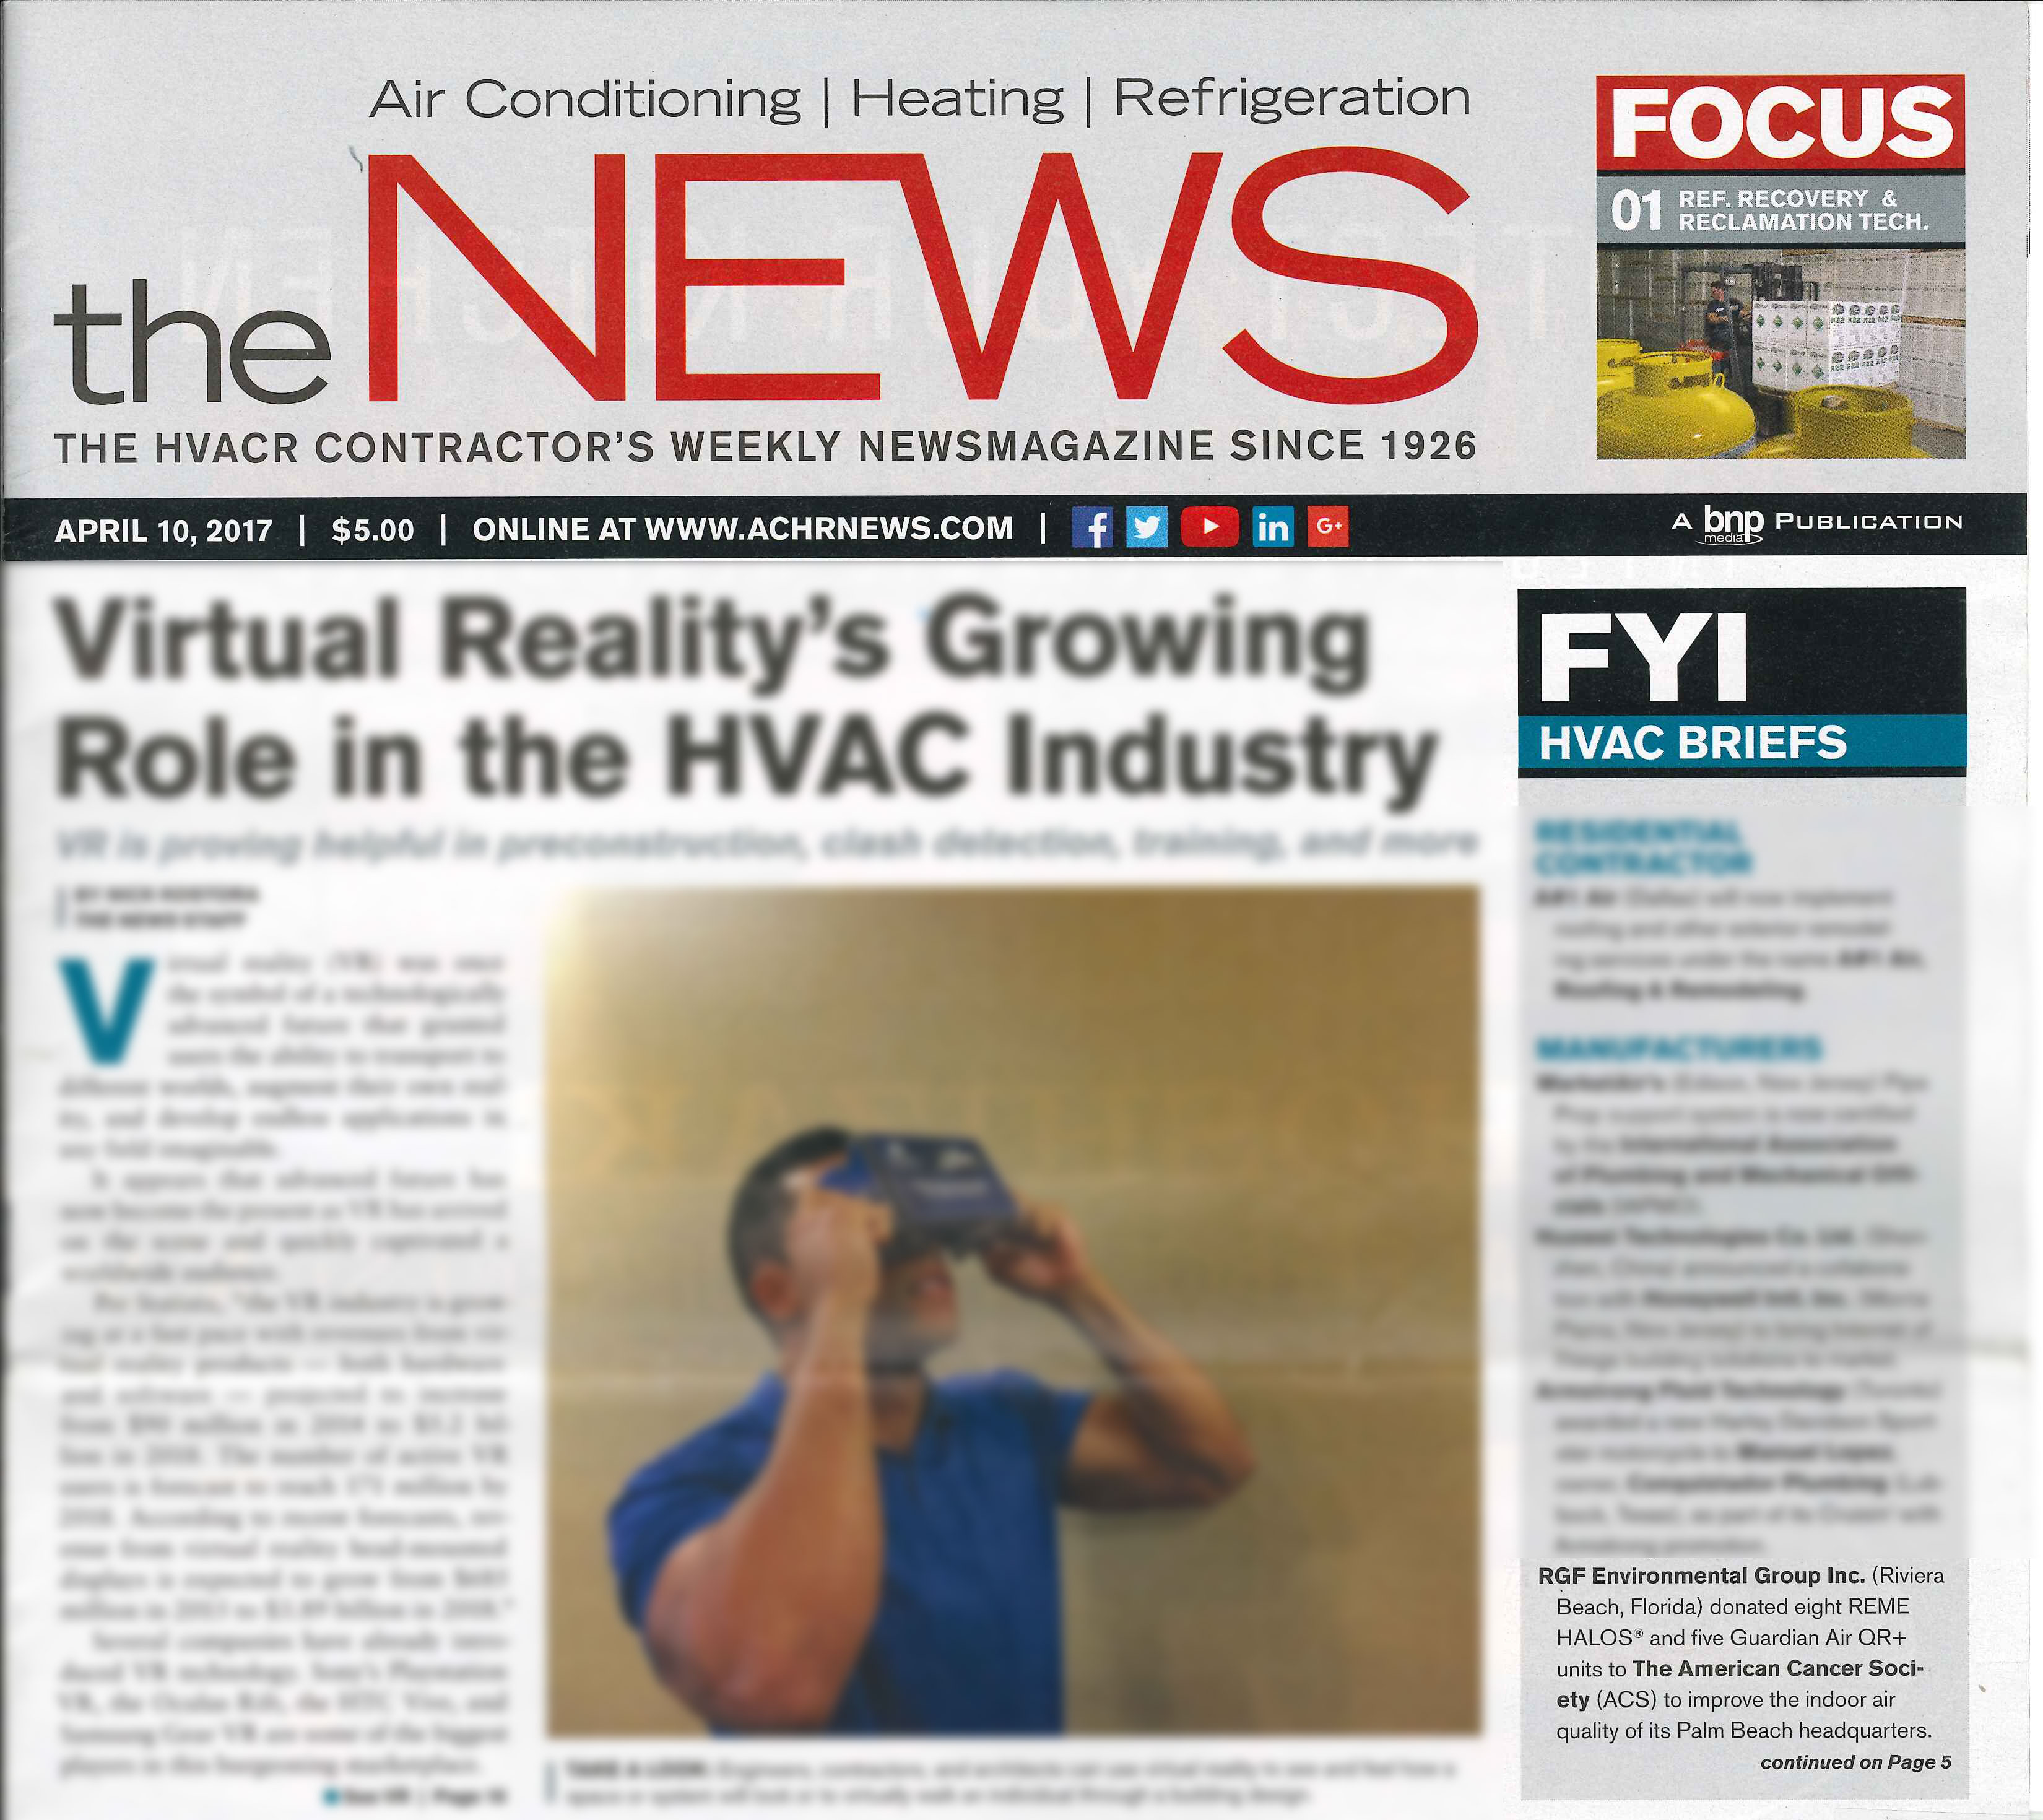 the NEWS, April 2017 - HVAC BRIEFS